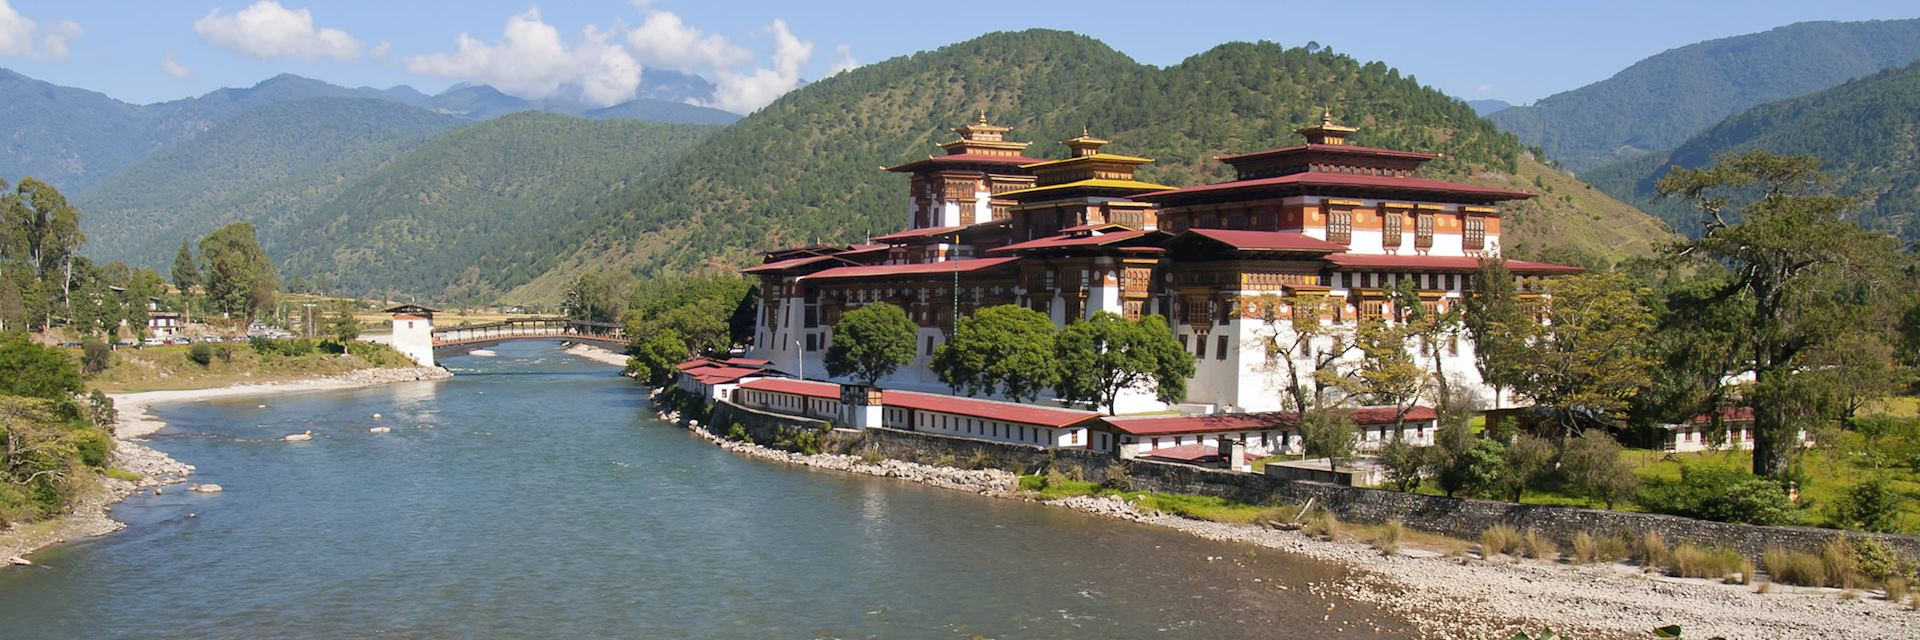 Punakha Dzong and the Mo Chhu River